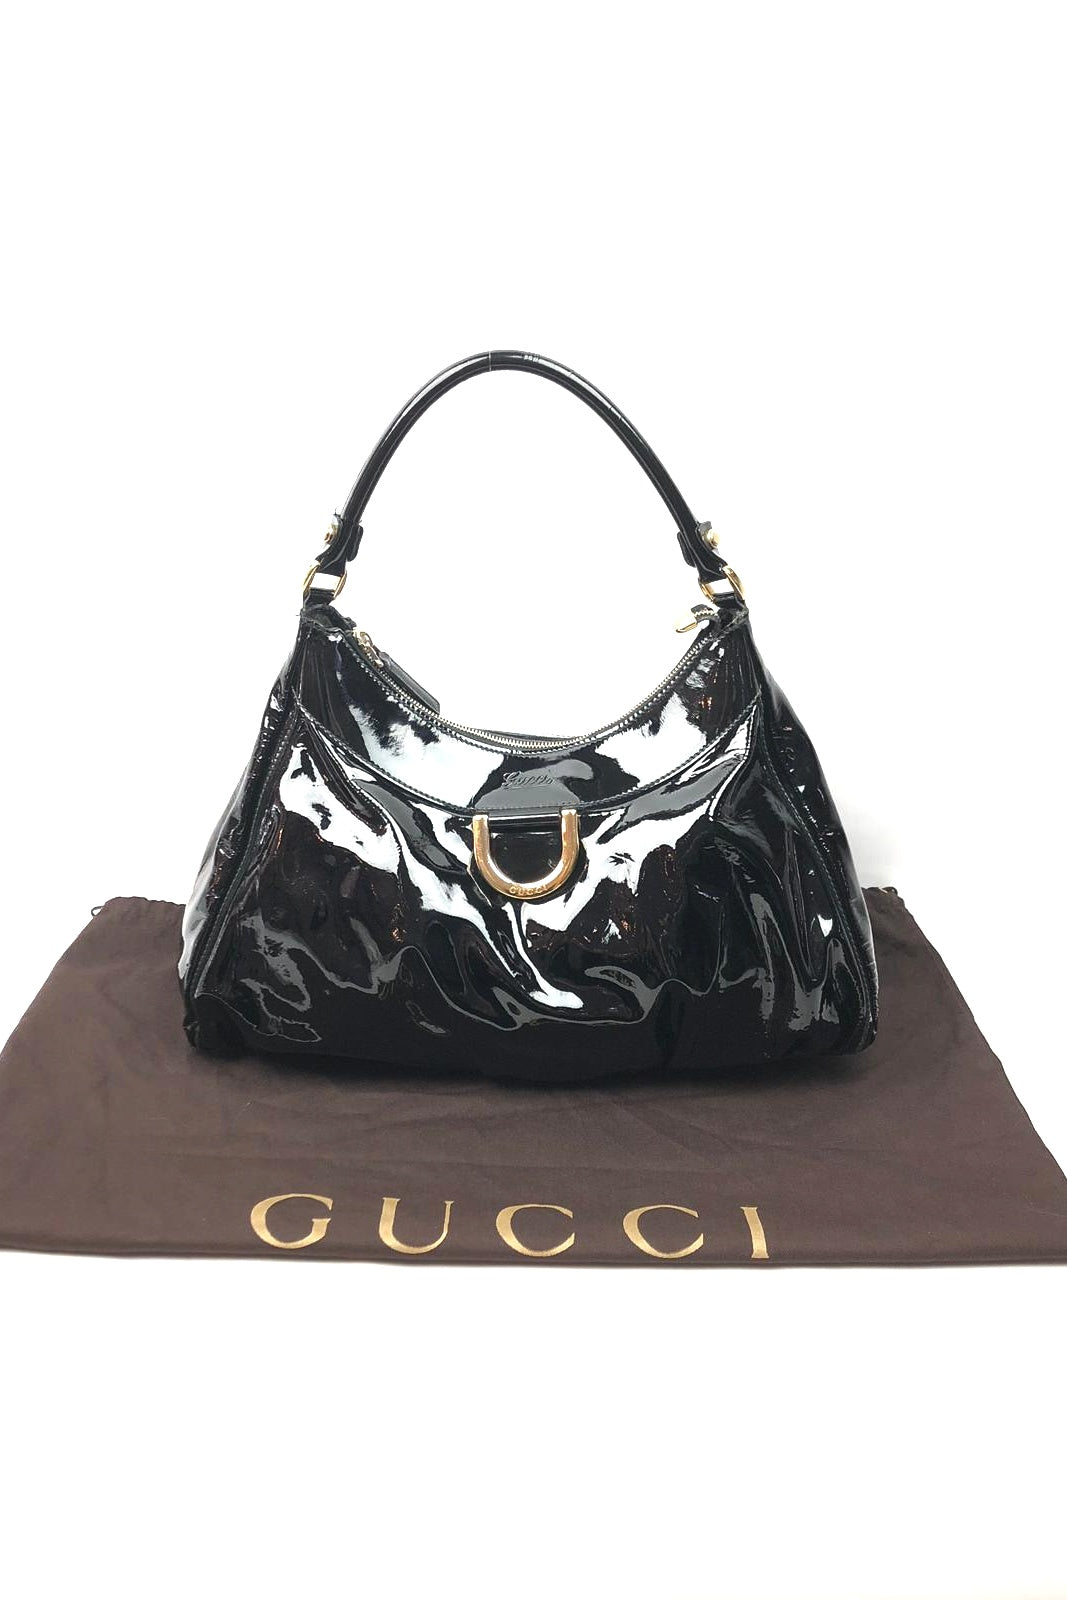 GUCCI Black Patent Leather D Ring Hobo Bag